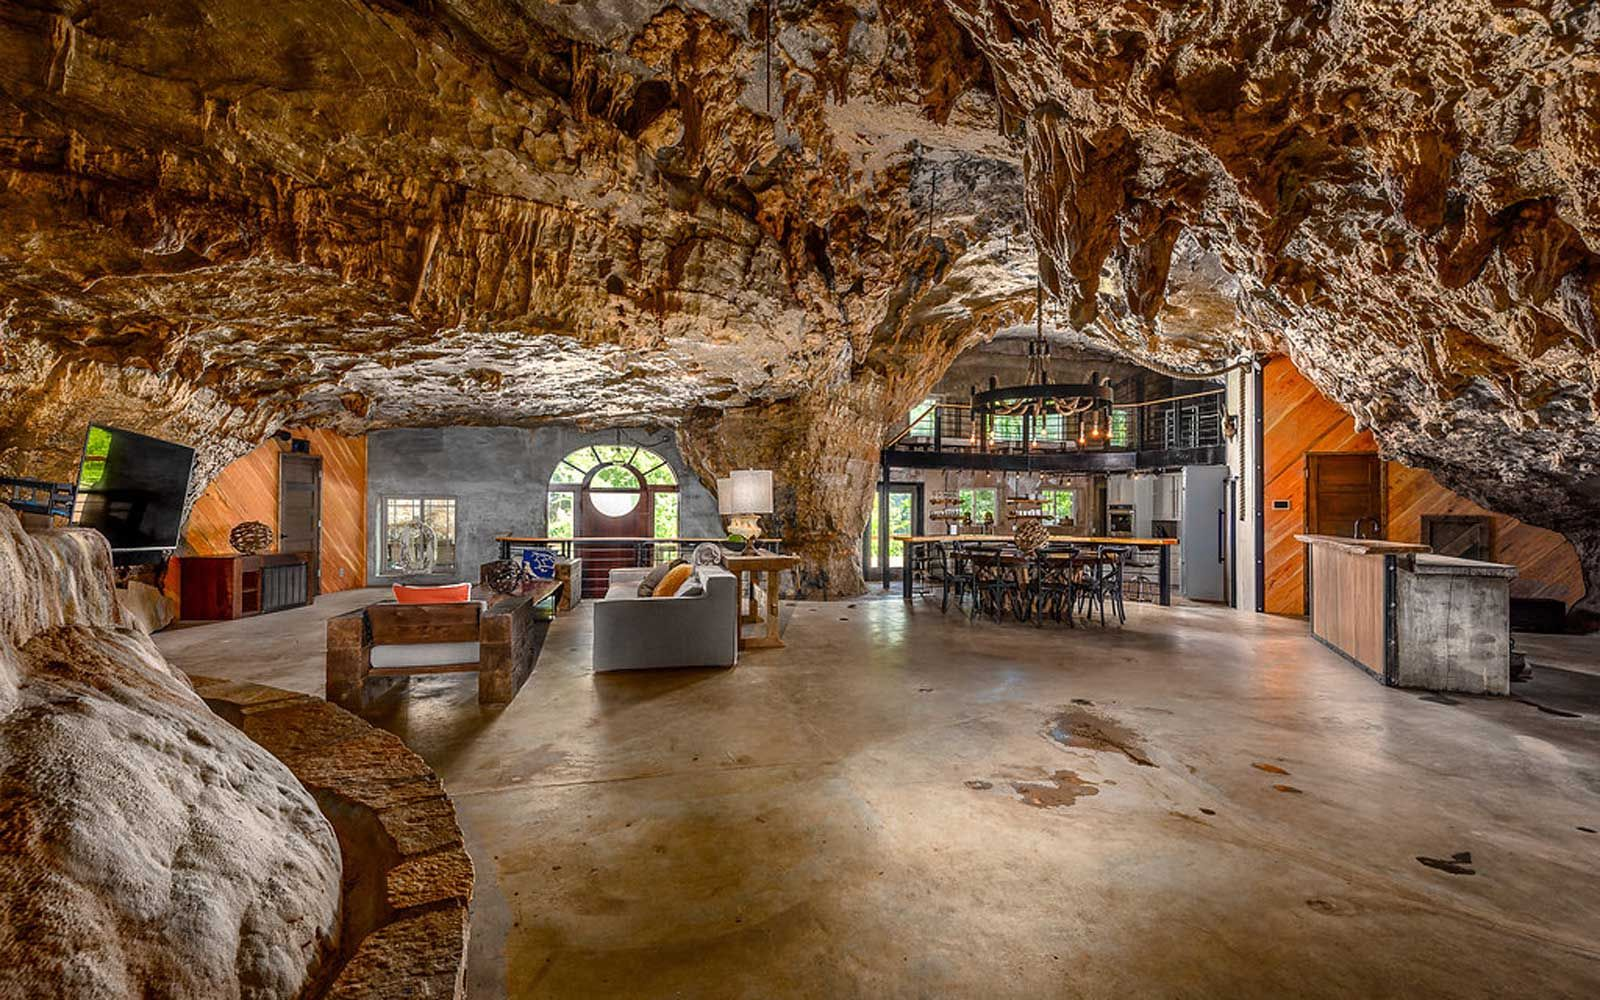 This Luxury Cave House Is Built Into a Mountain — and You Can Rent ...